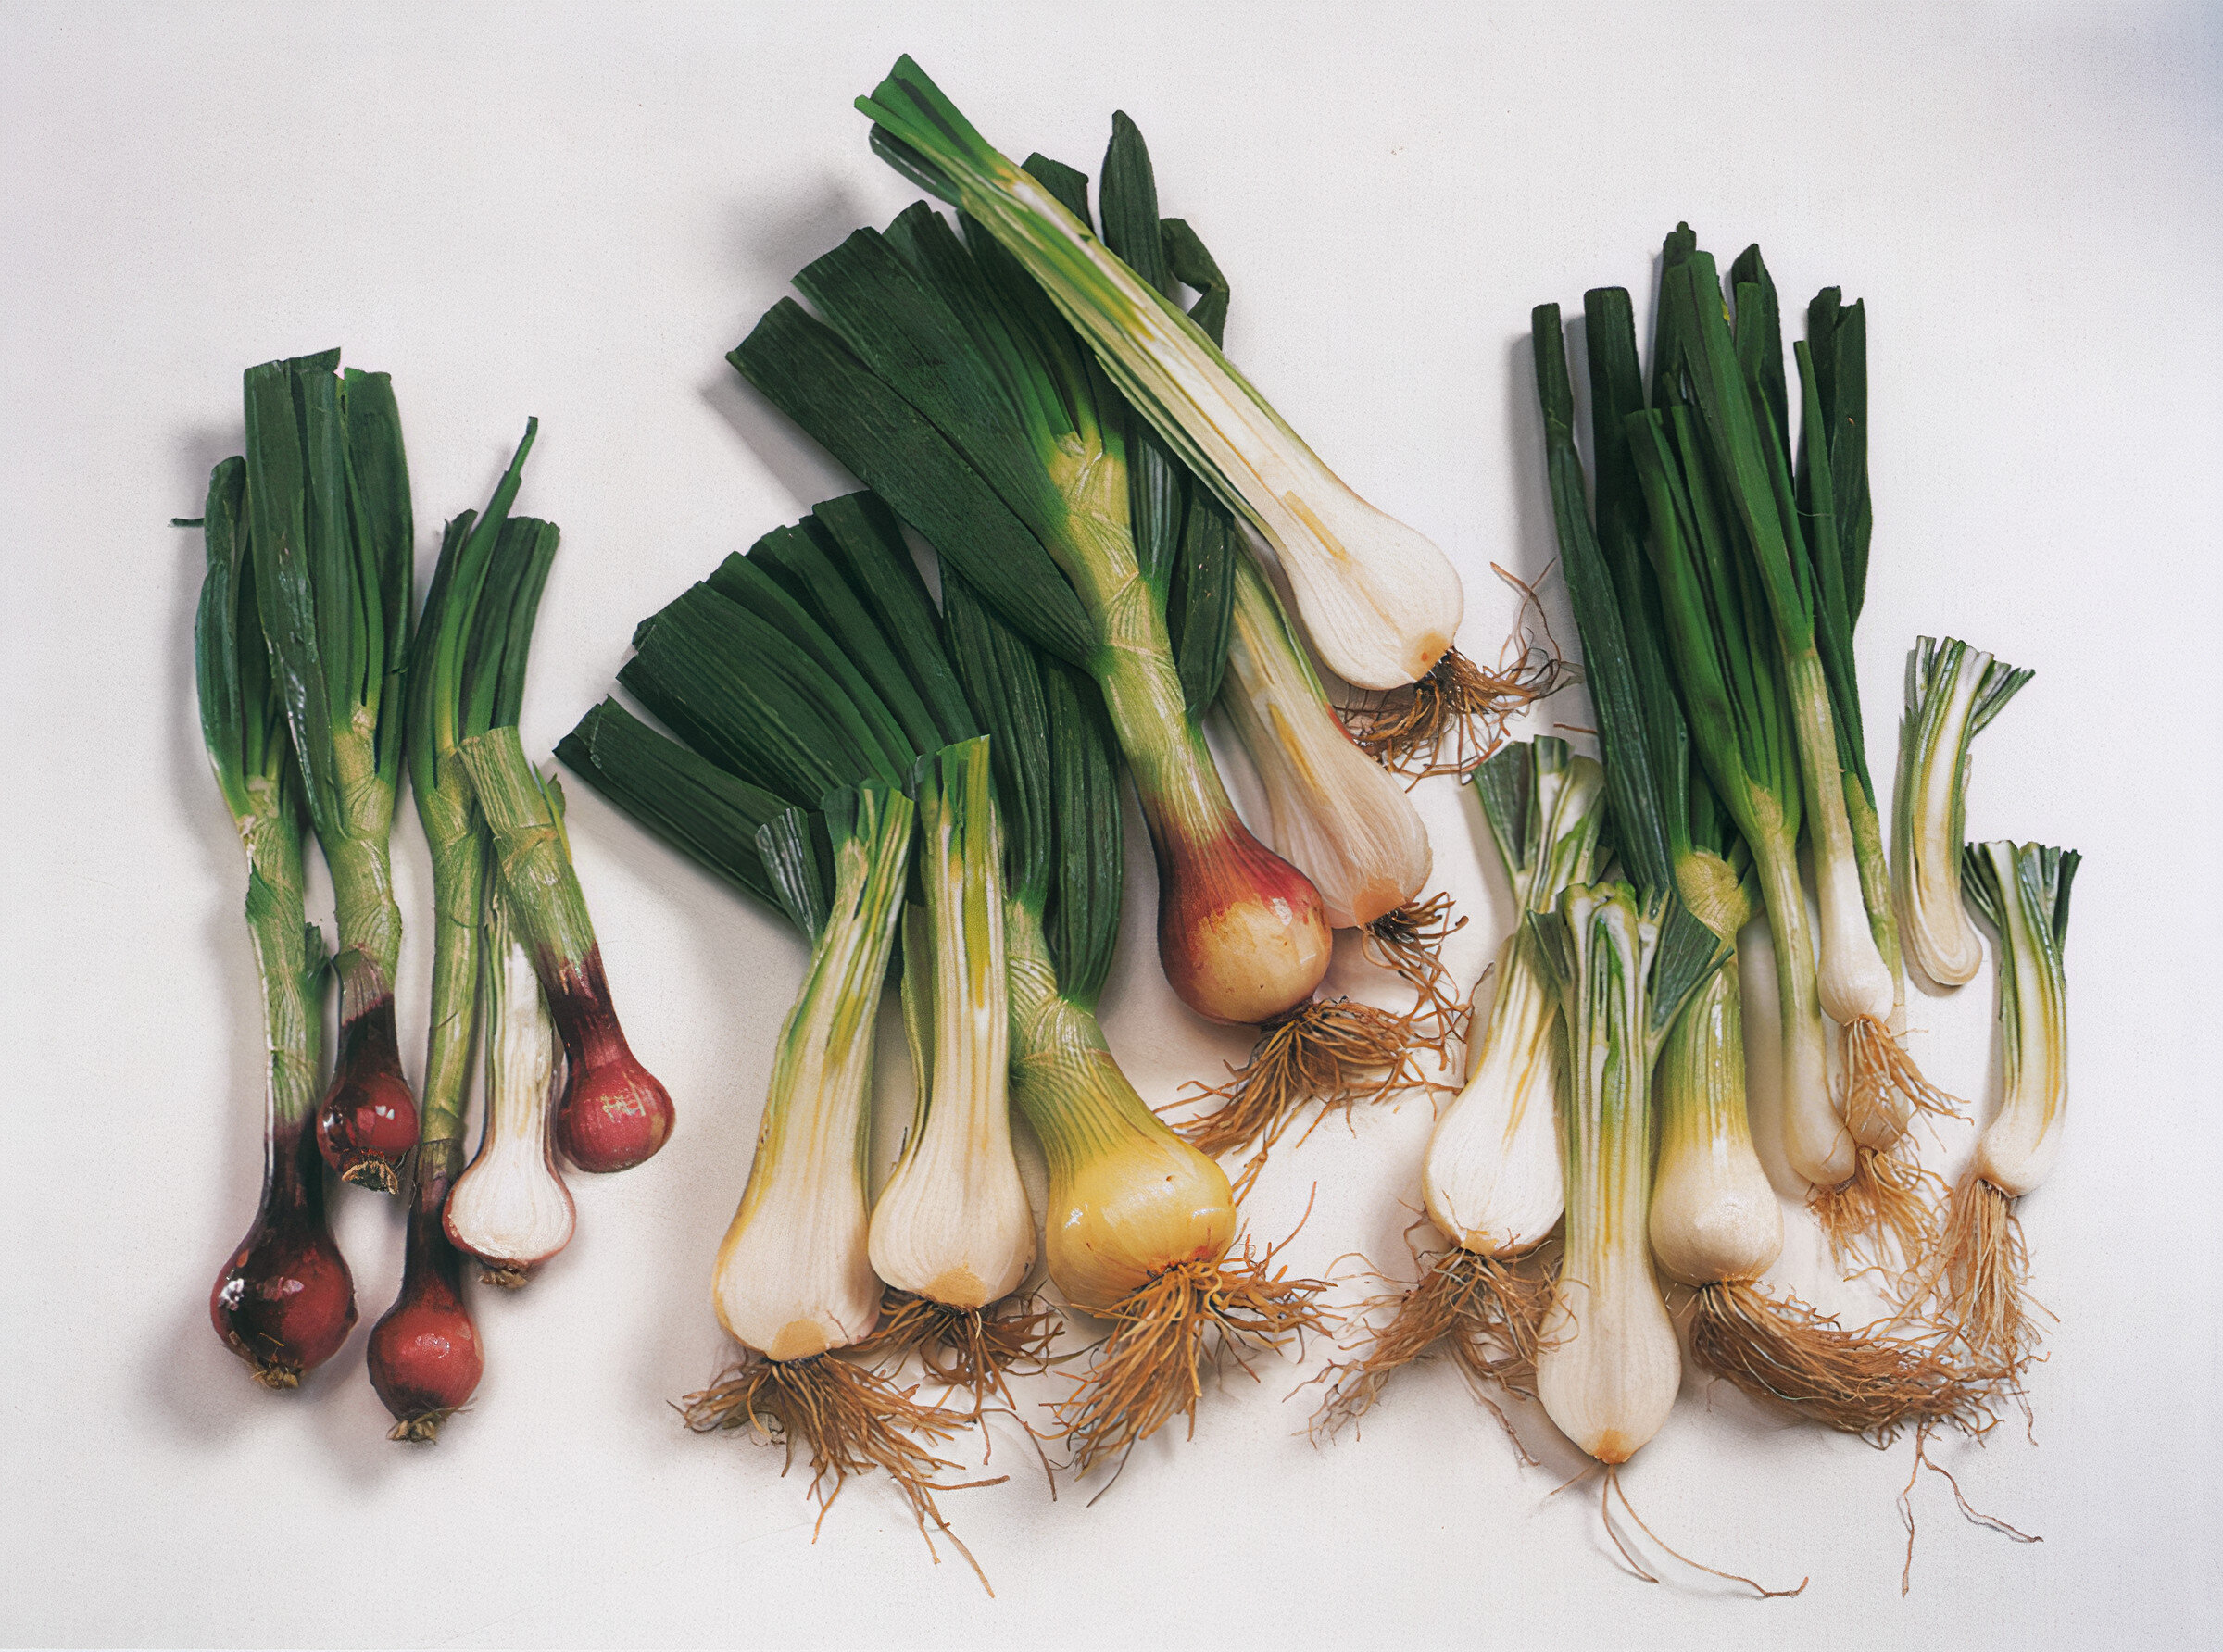 Different types of green onion. Photo: Amos Chan